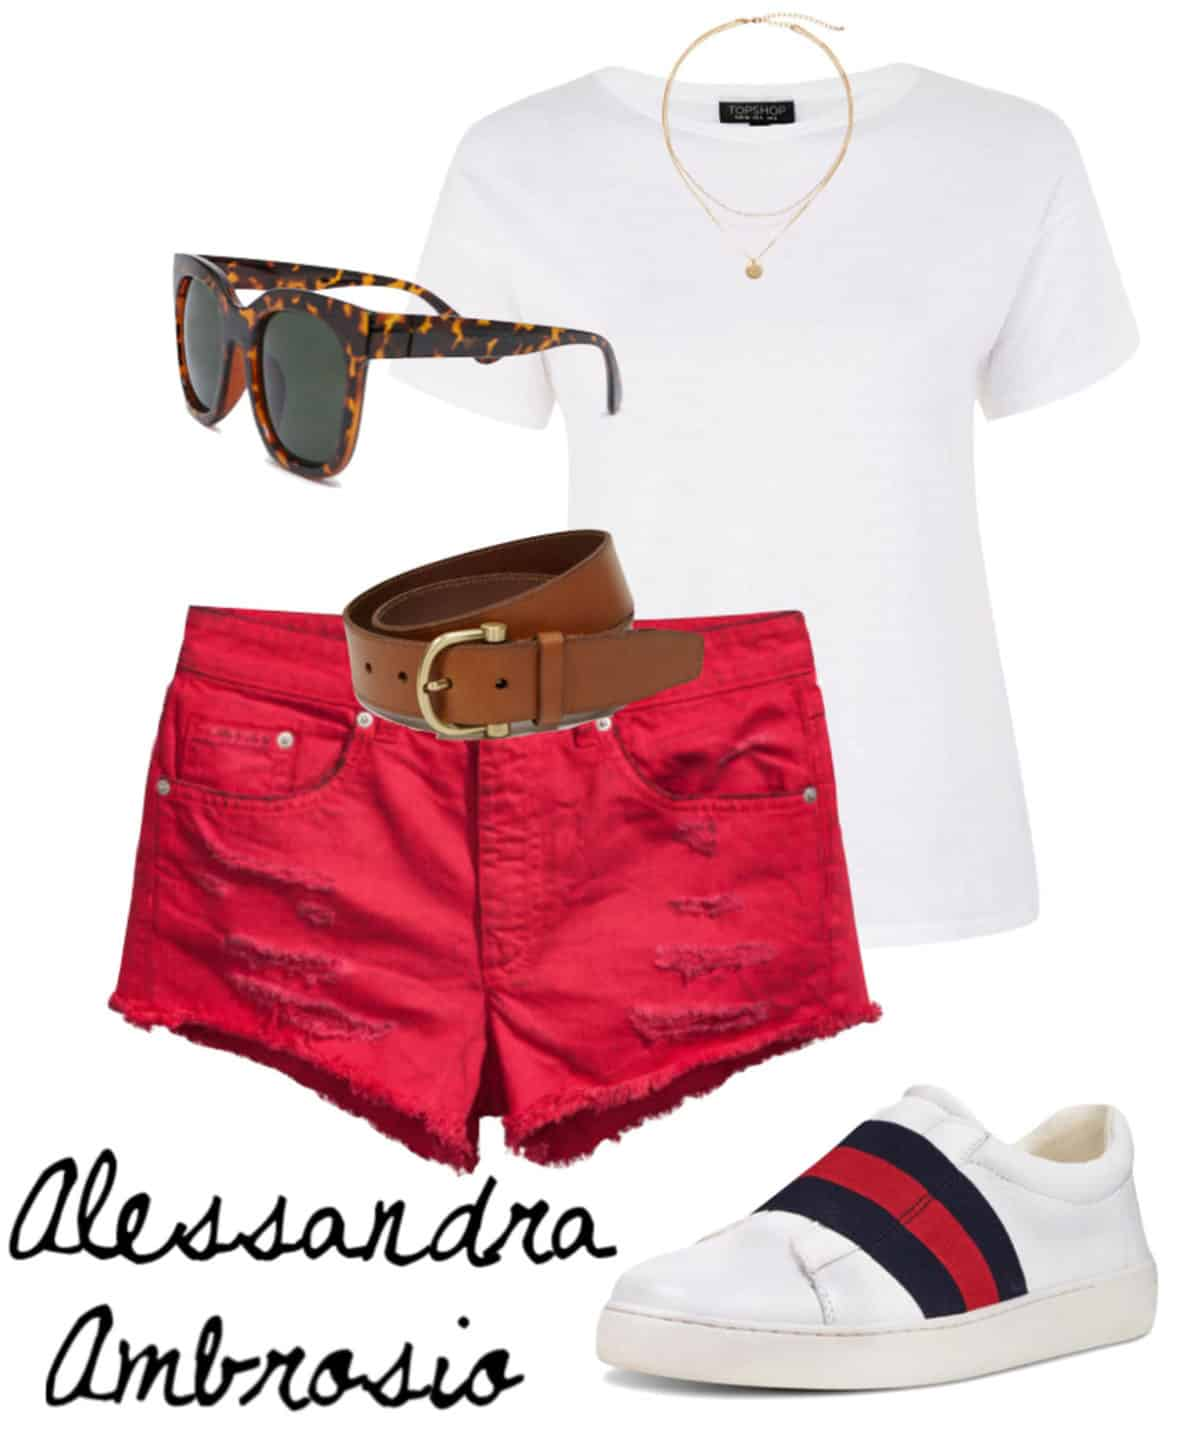 Alessandra Ambrosio Outfit: white t-shirt, gold layered necklace, tortoise sunglasses, red denim shorts, brown and gold buckle belt, slip on sneakers with stripe